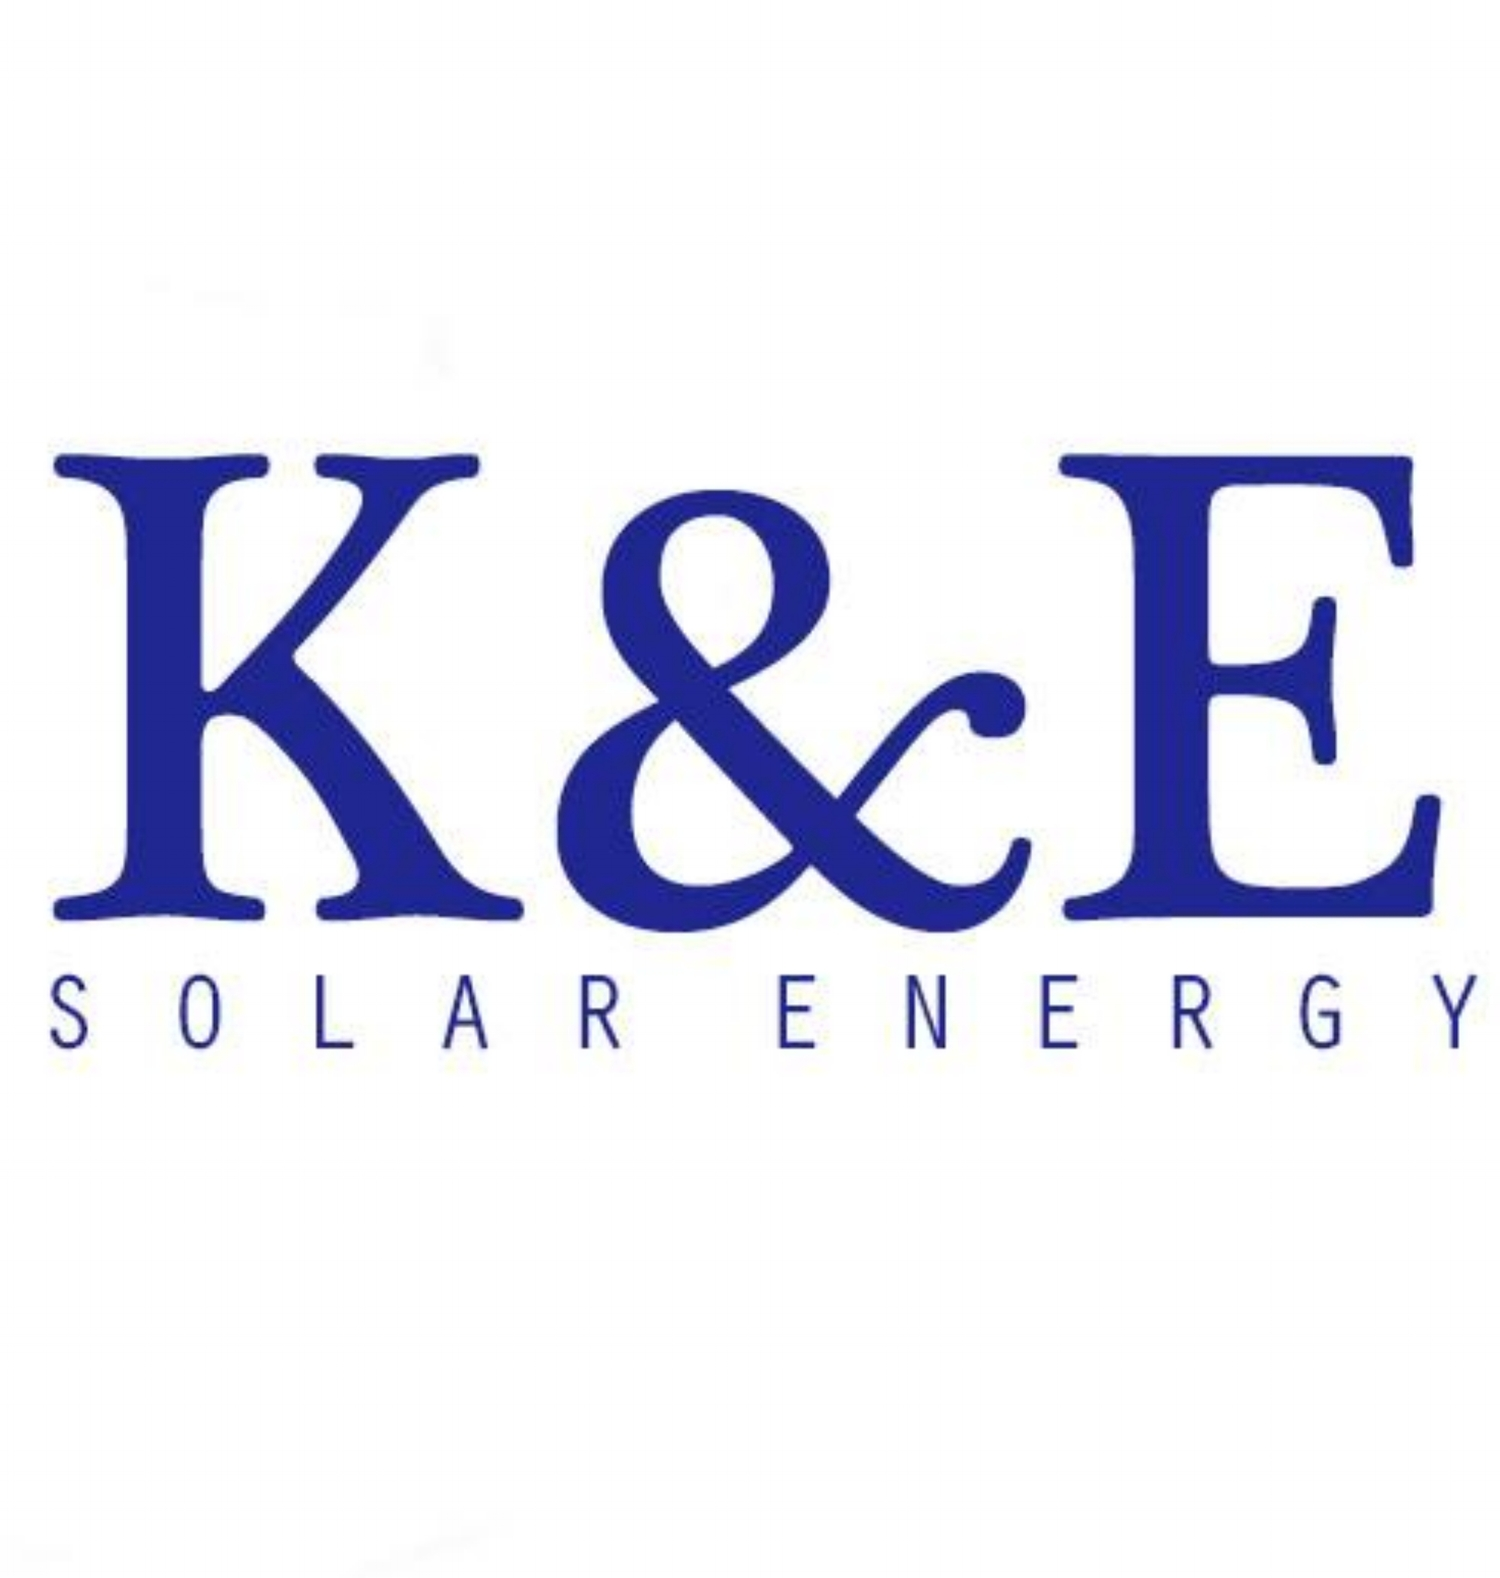 K&E SOLAR ENERGY INC.